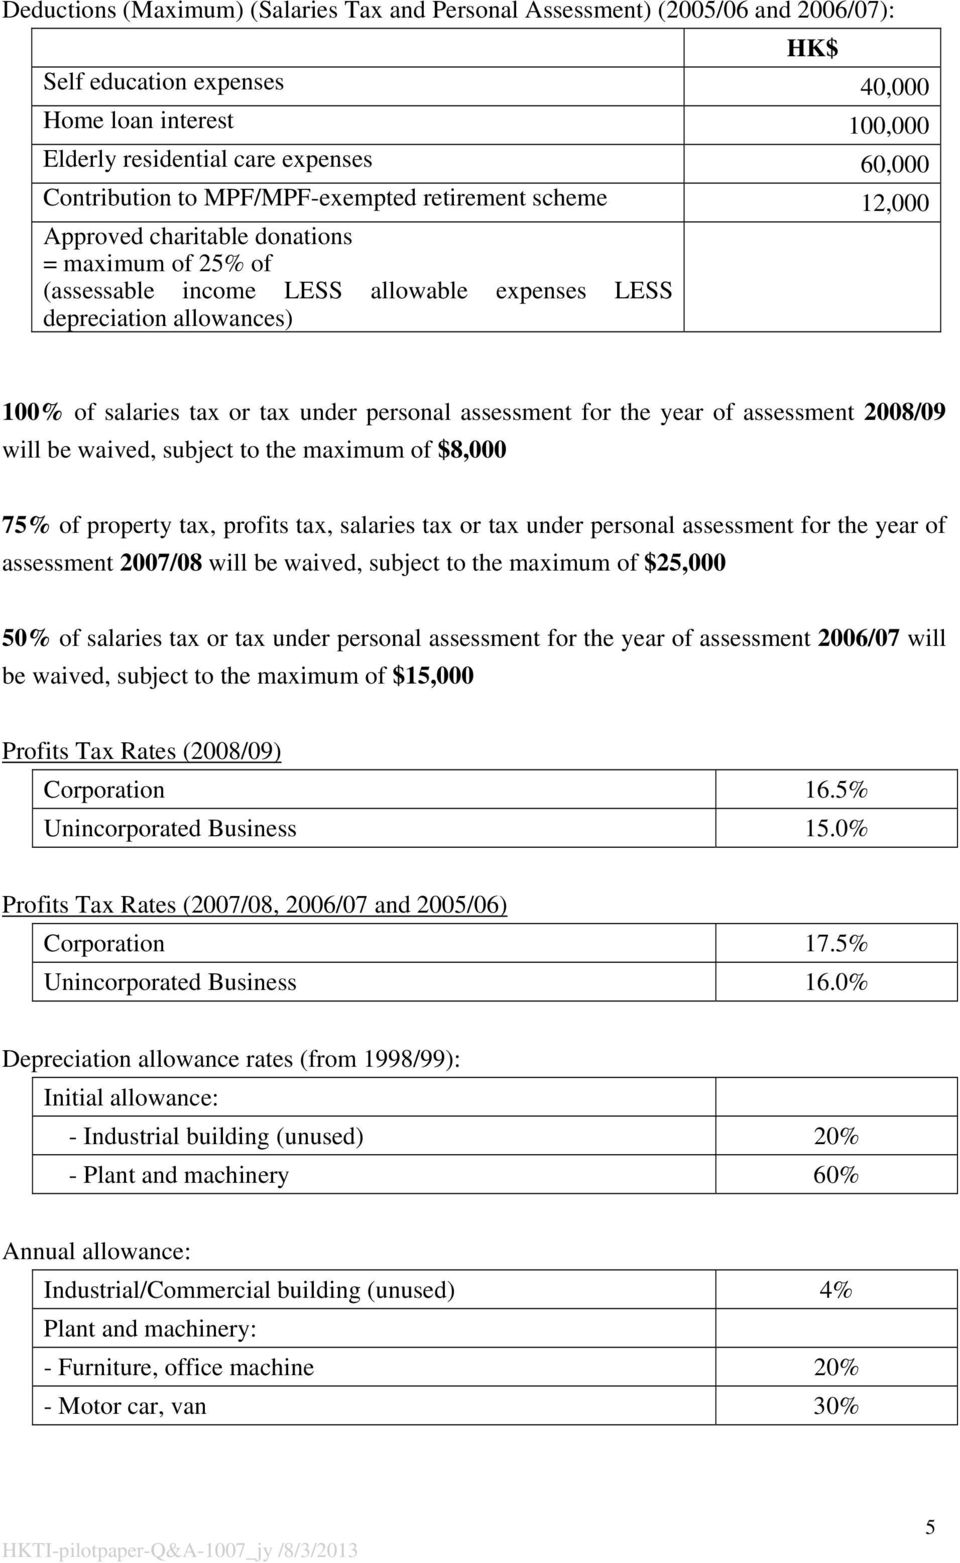 under personal assessment for the year of assessment 2008/09 will be waived, subject to the maximum of $8,000 75% of property tax, profits tax, salaries tax or tax under personal assessment for the